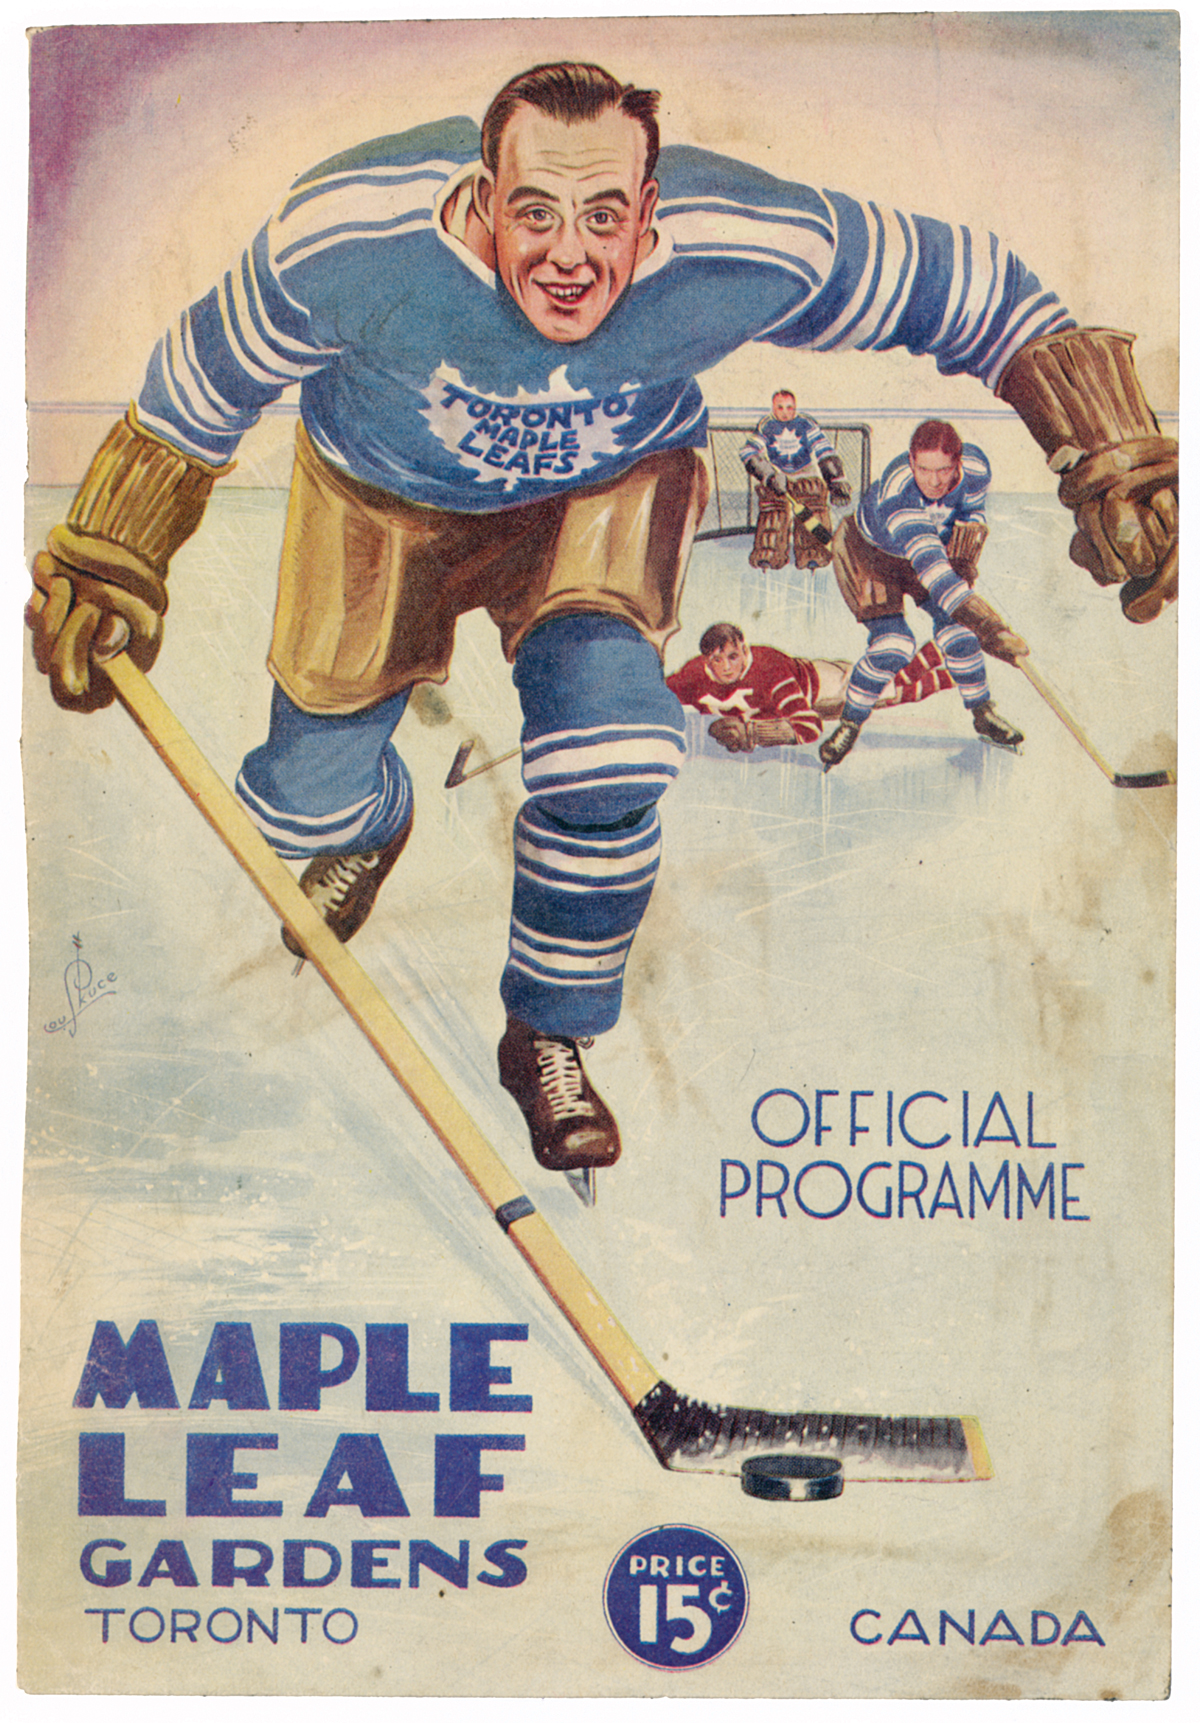 Picture of 1932 Maple Leaf Gardens program cover